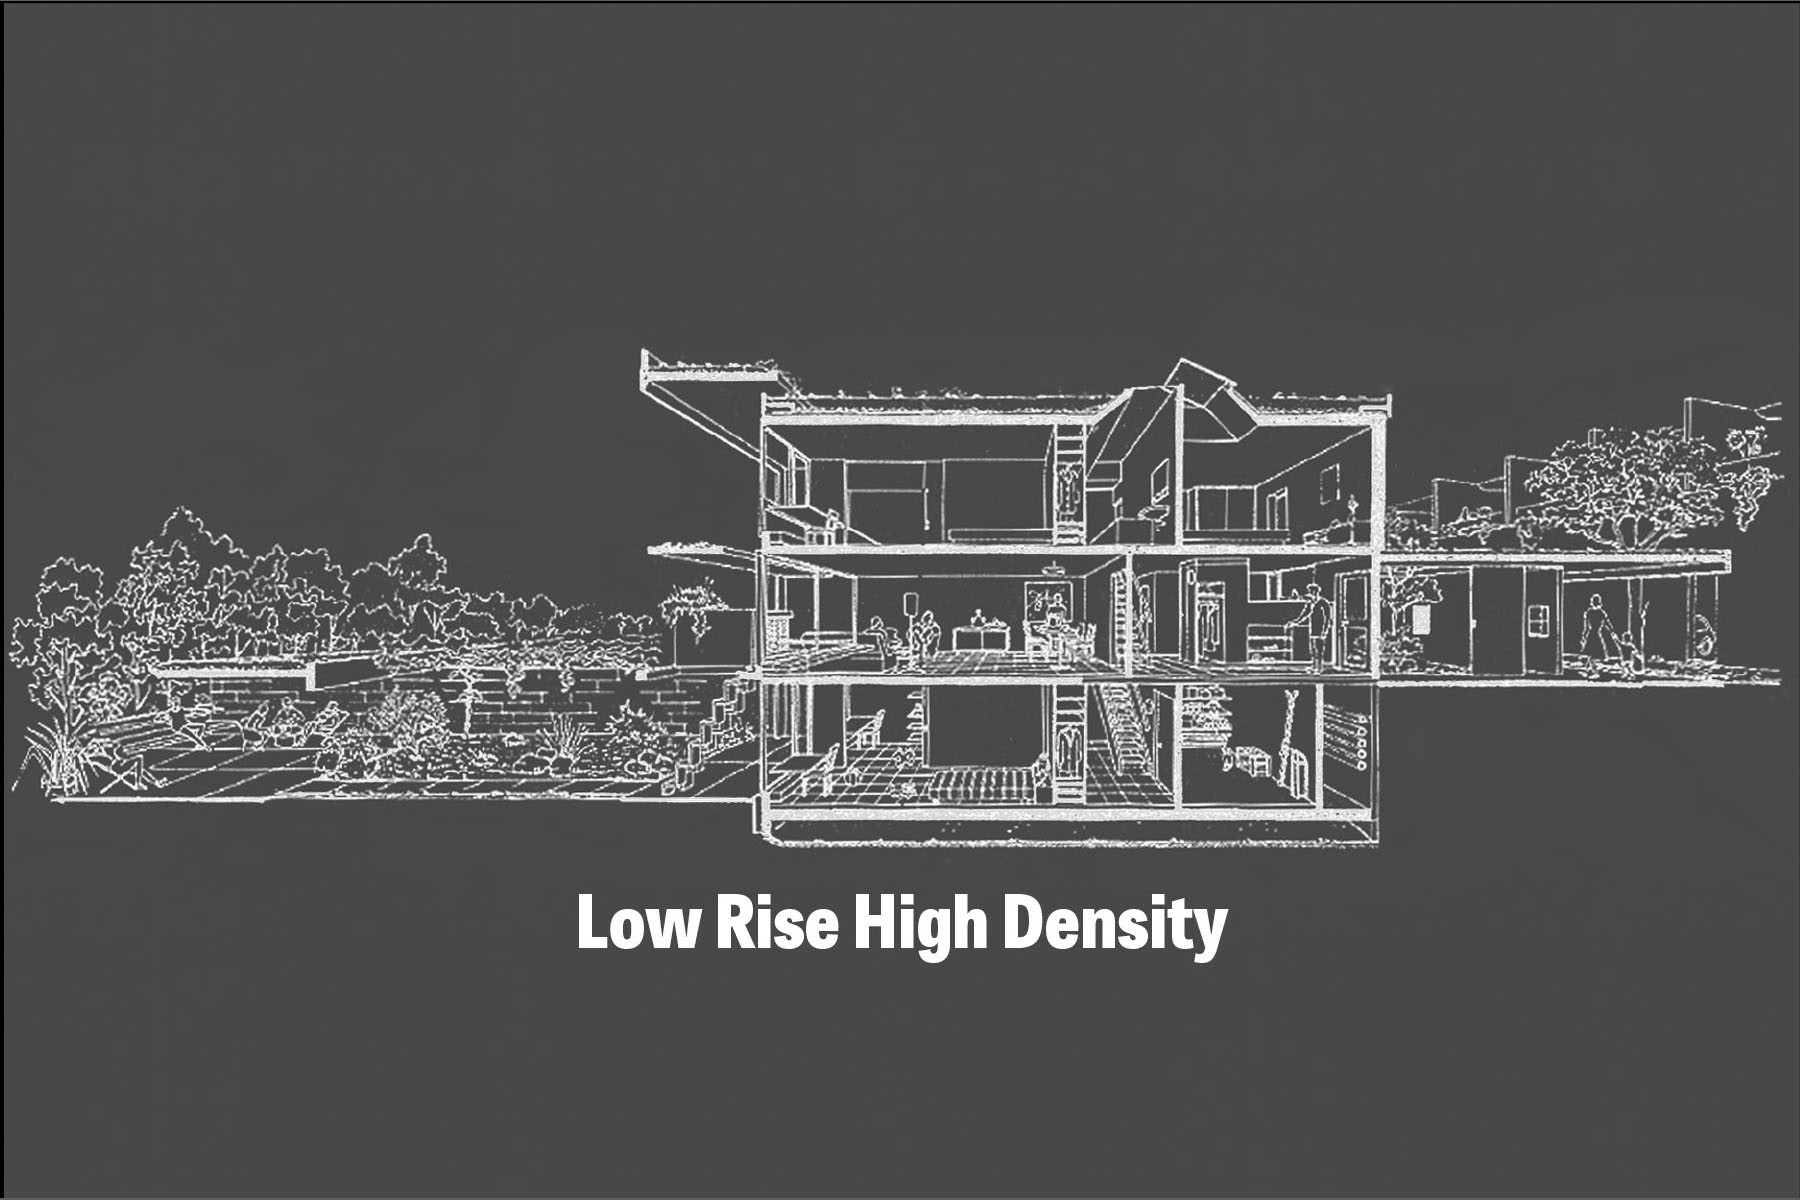 'Low Rise High Density' Exhibition, Courtesy of Center for Architecture & AIA New York